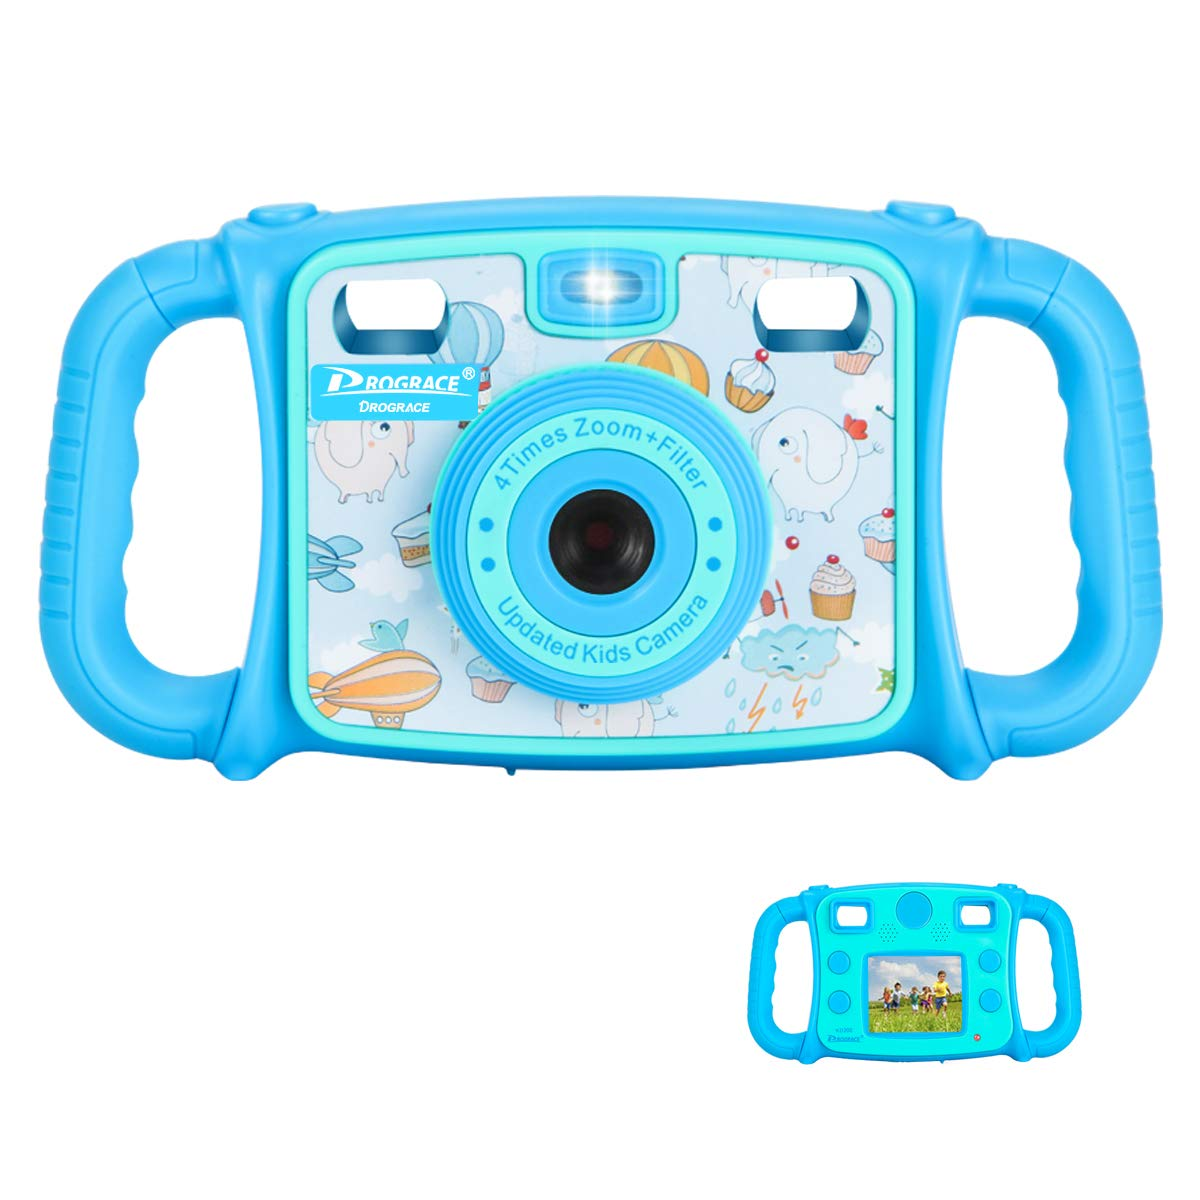 "Prograce Kids Camera Creative Camera 1080P HD Video Recorder Digital Action Camera Camcorder for Boys Girls Gifts 2.0"" LCD Screen with 4X Digital Zoom and Funny Game(Blue)"